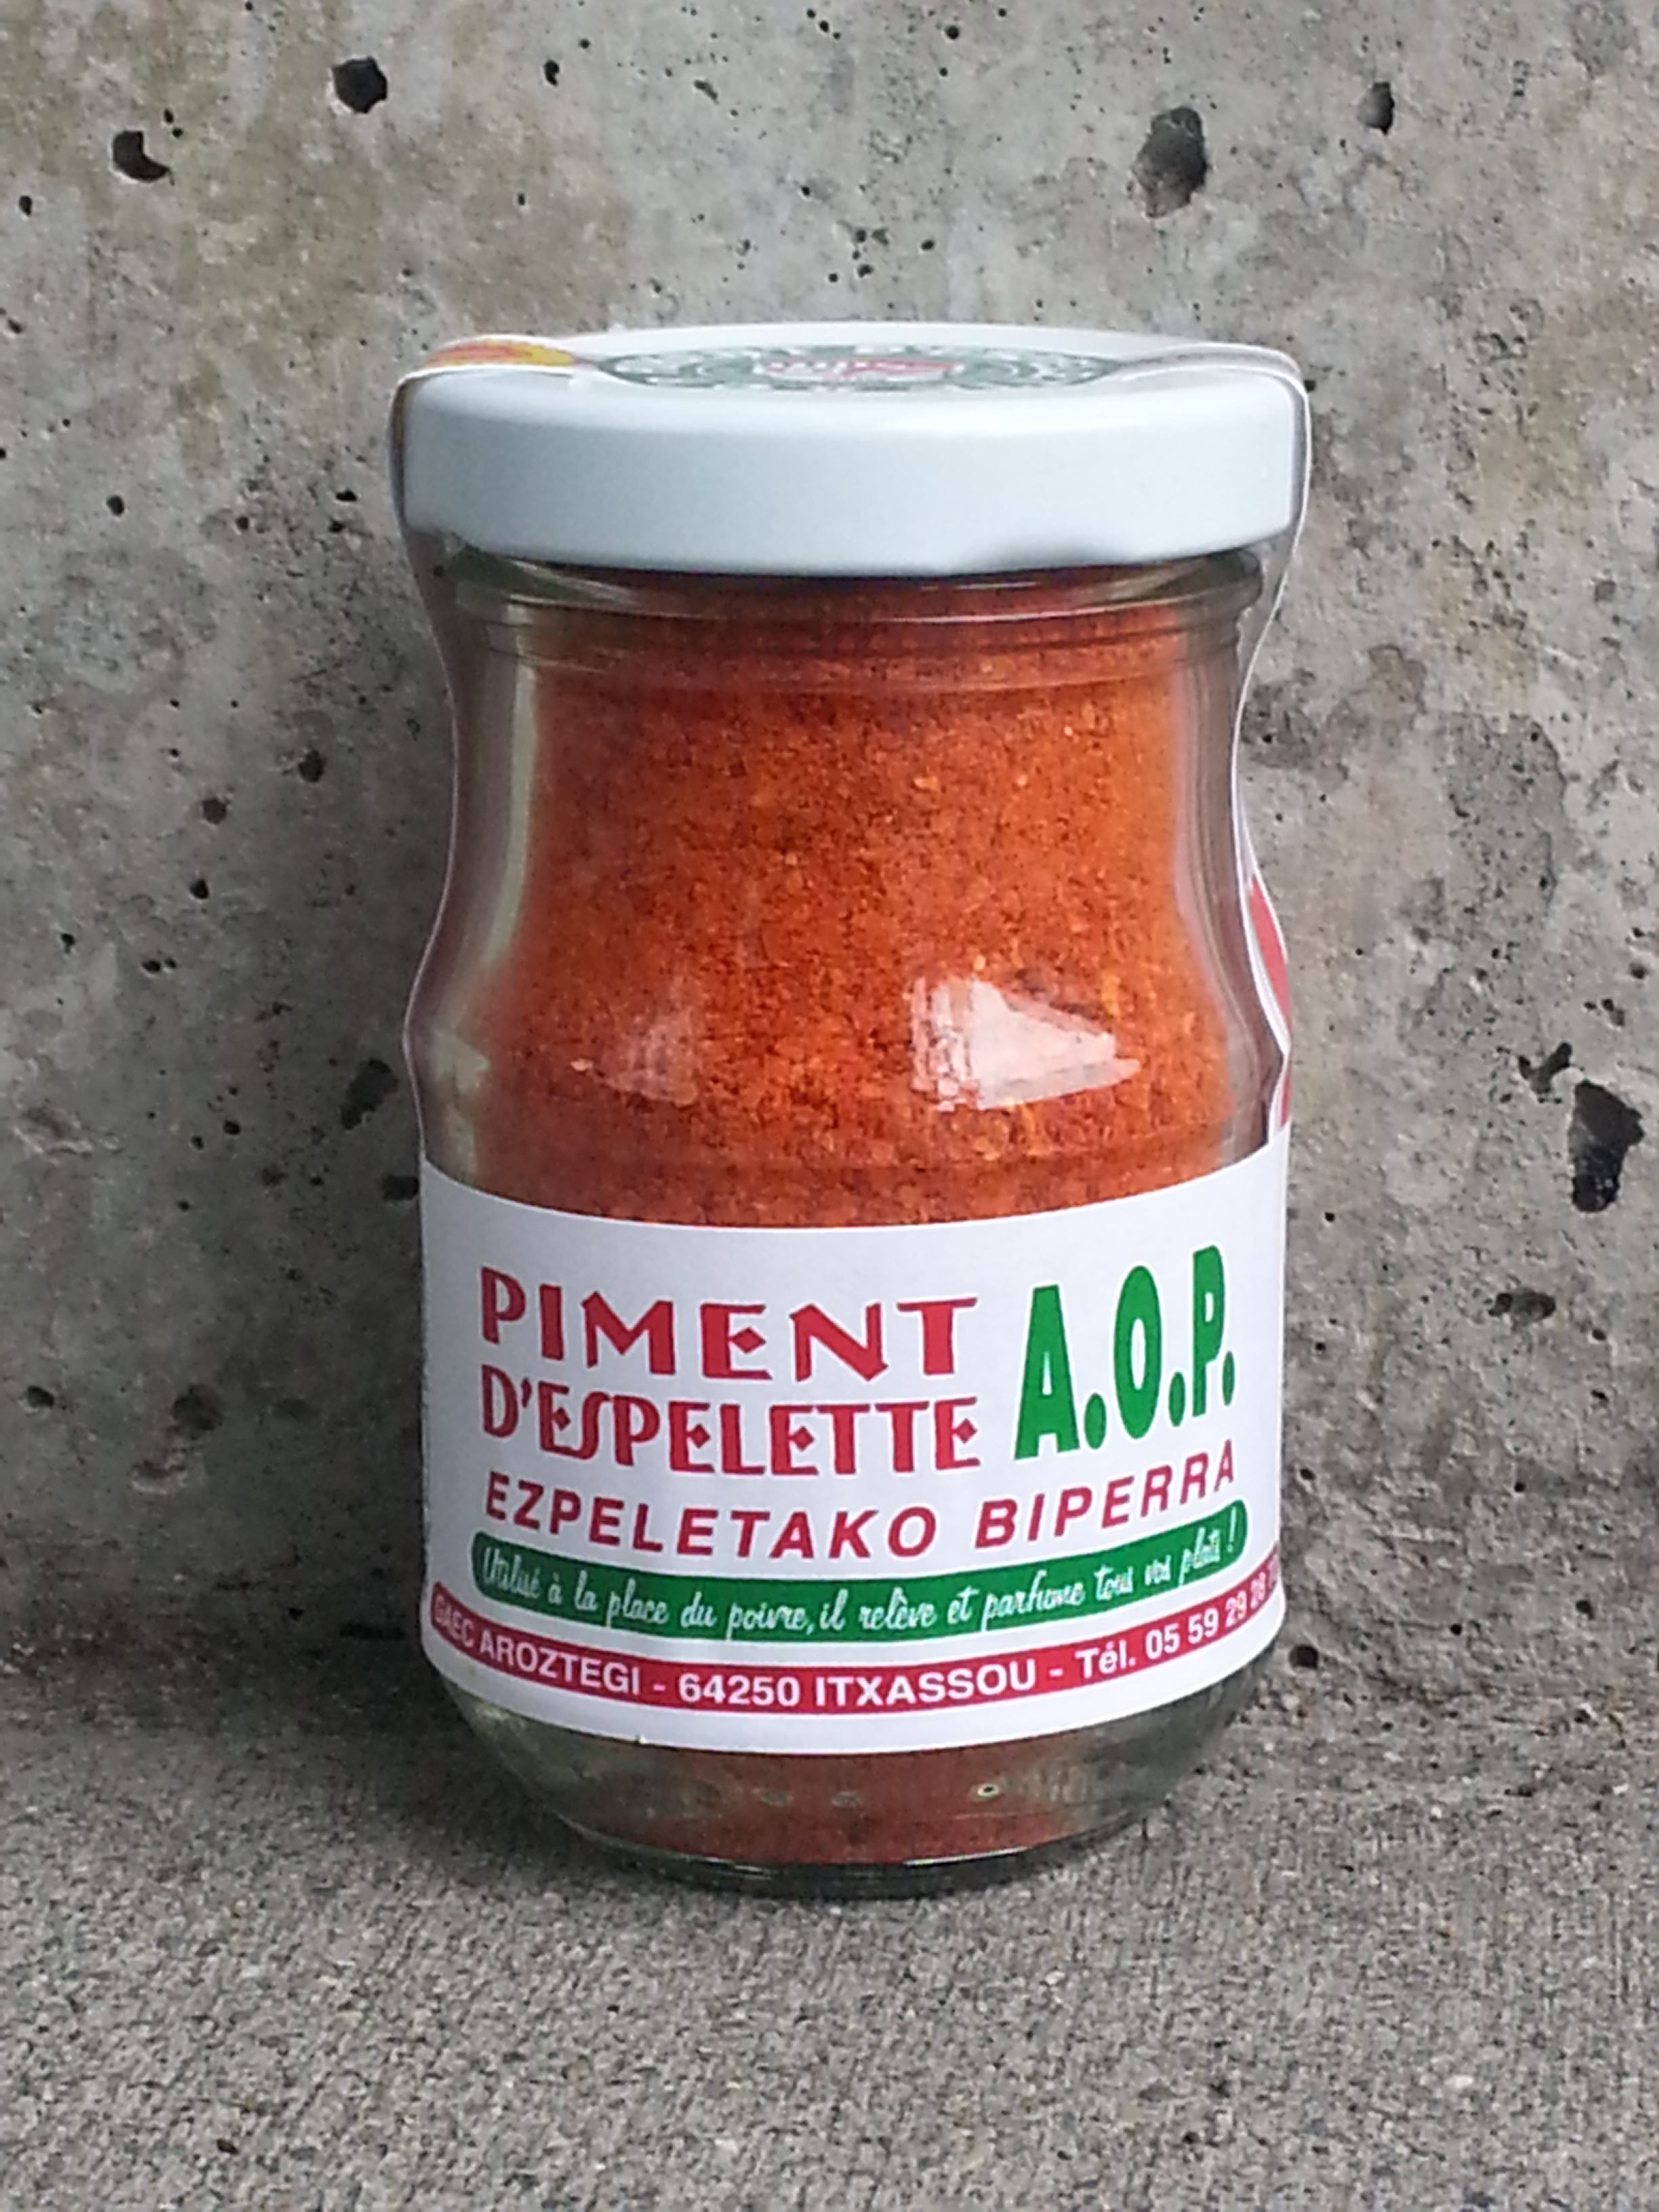 Piment d'Espelette | The Spanish Table